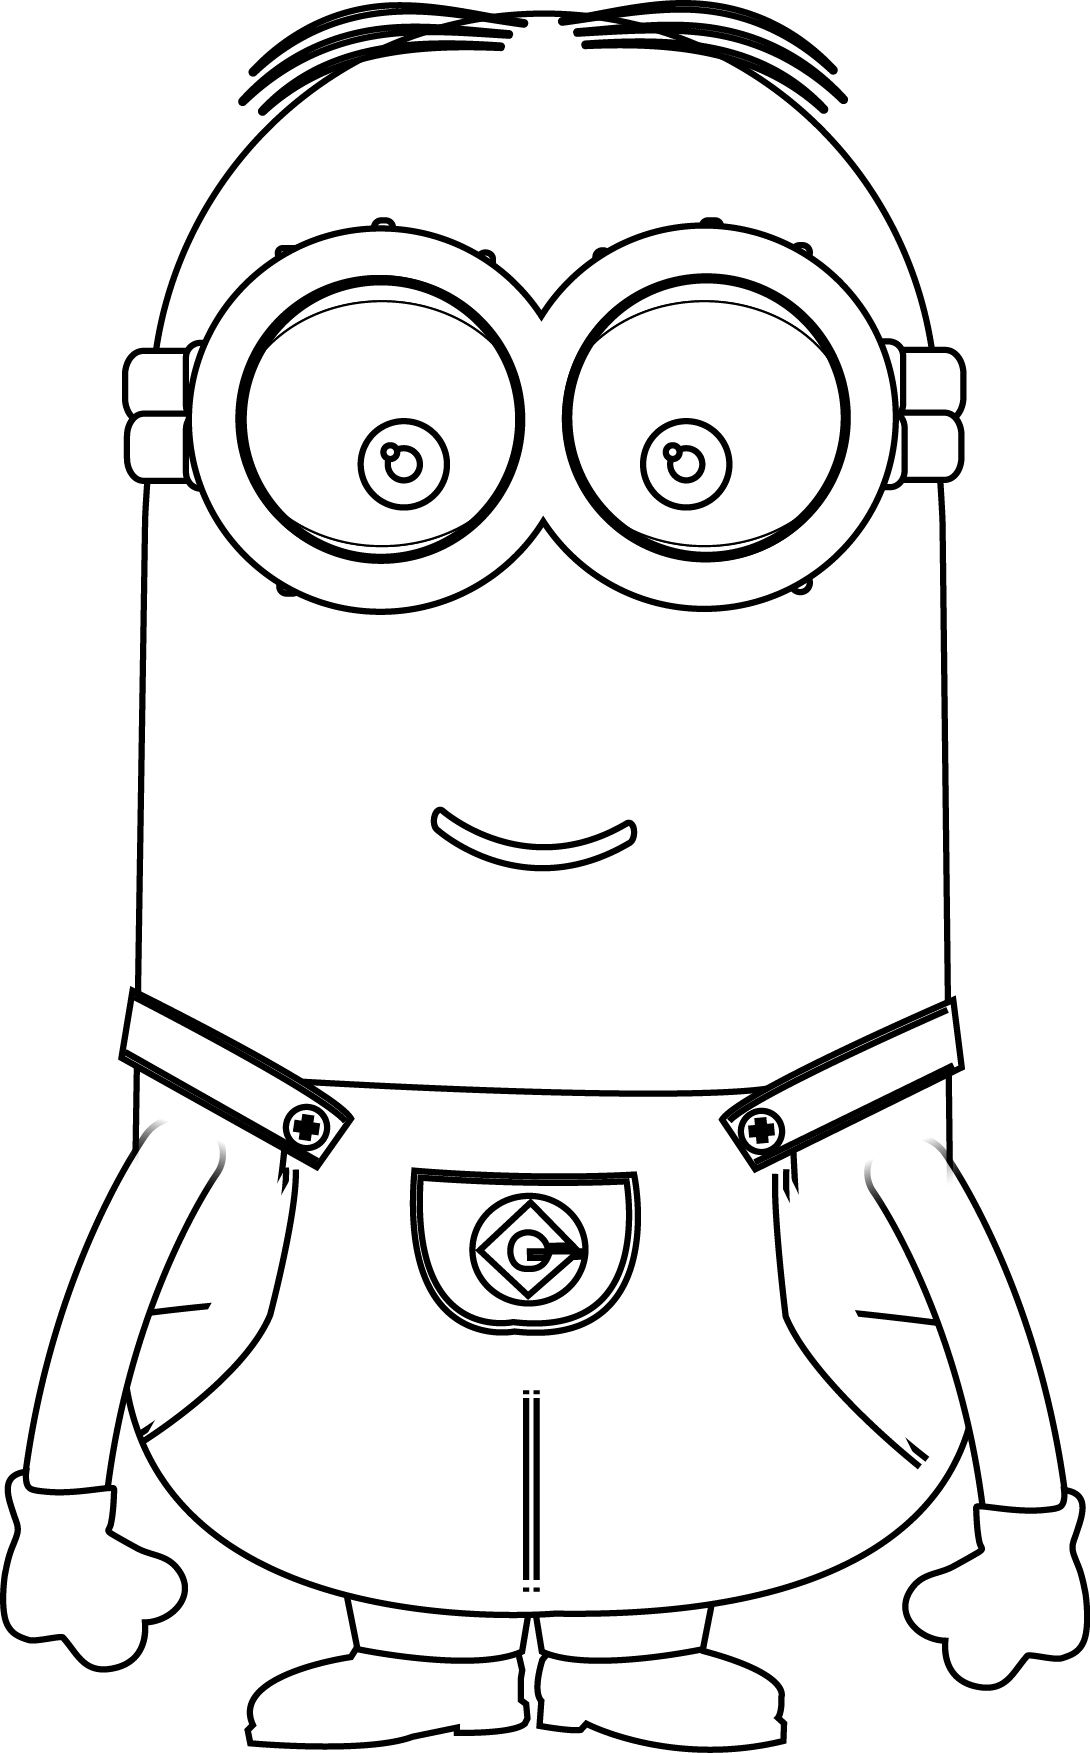 On online coloring minion - Minions Kevin Perfect Coloring Page Wecoloringpage More